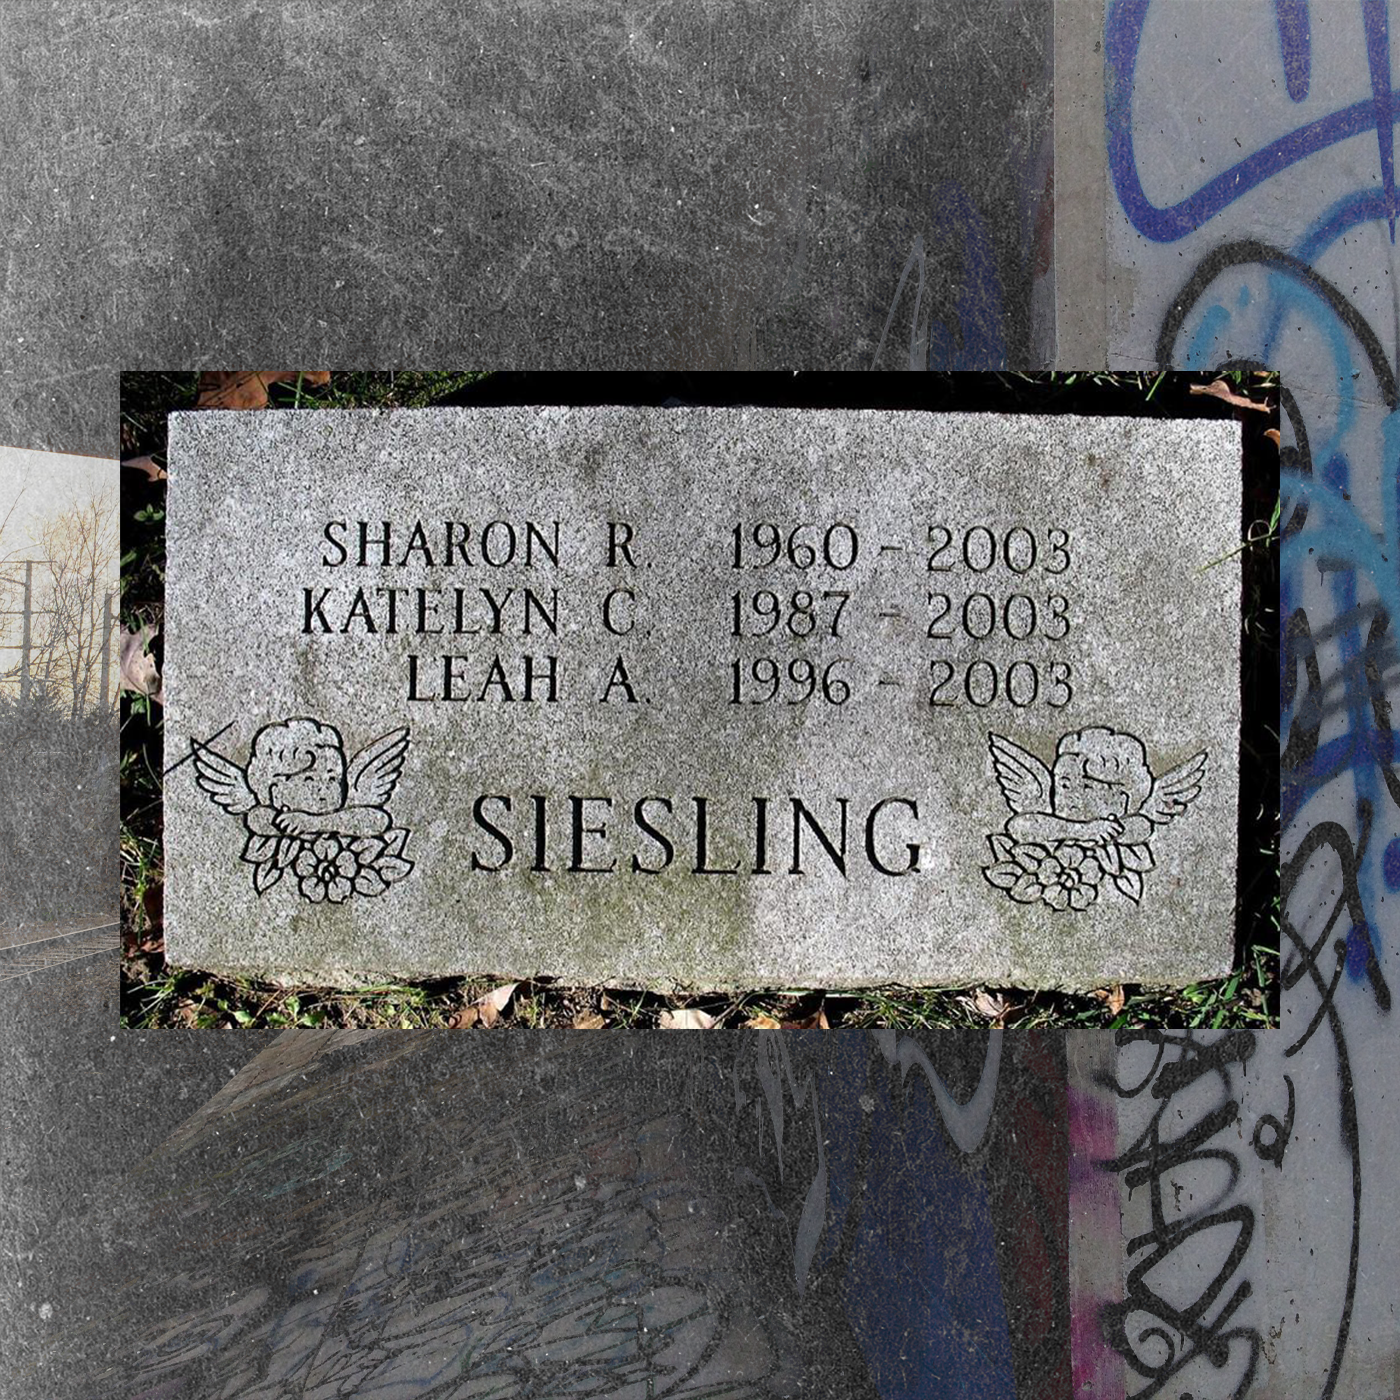 Siesling family grave